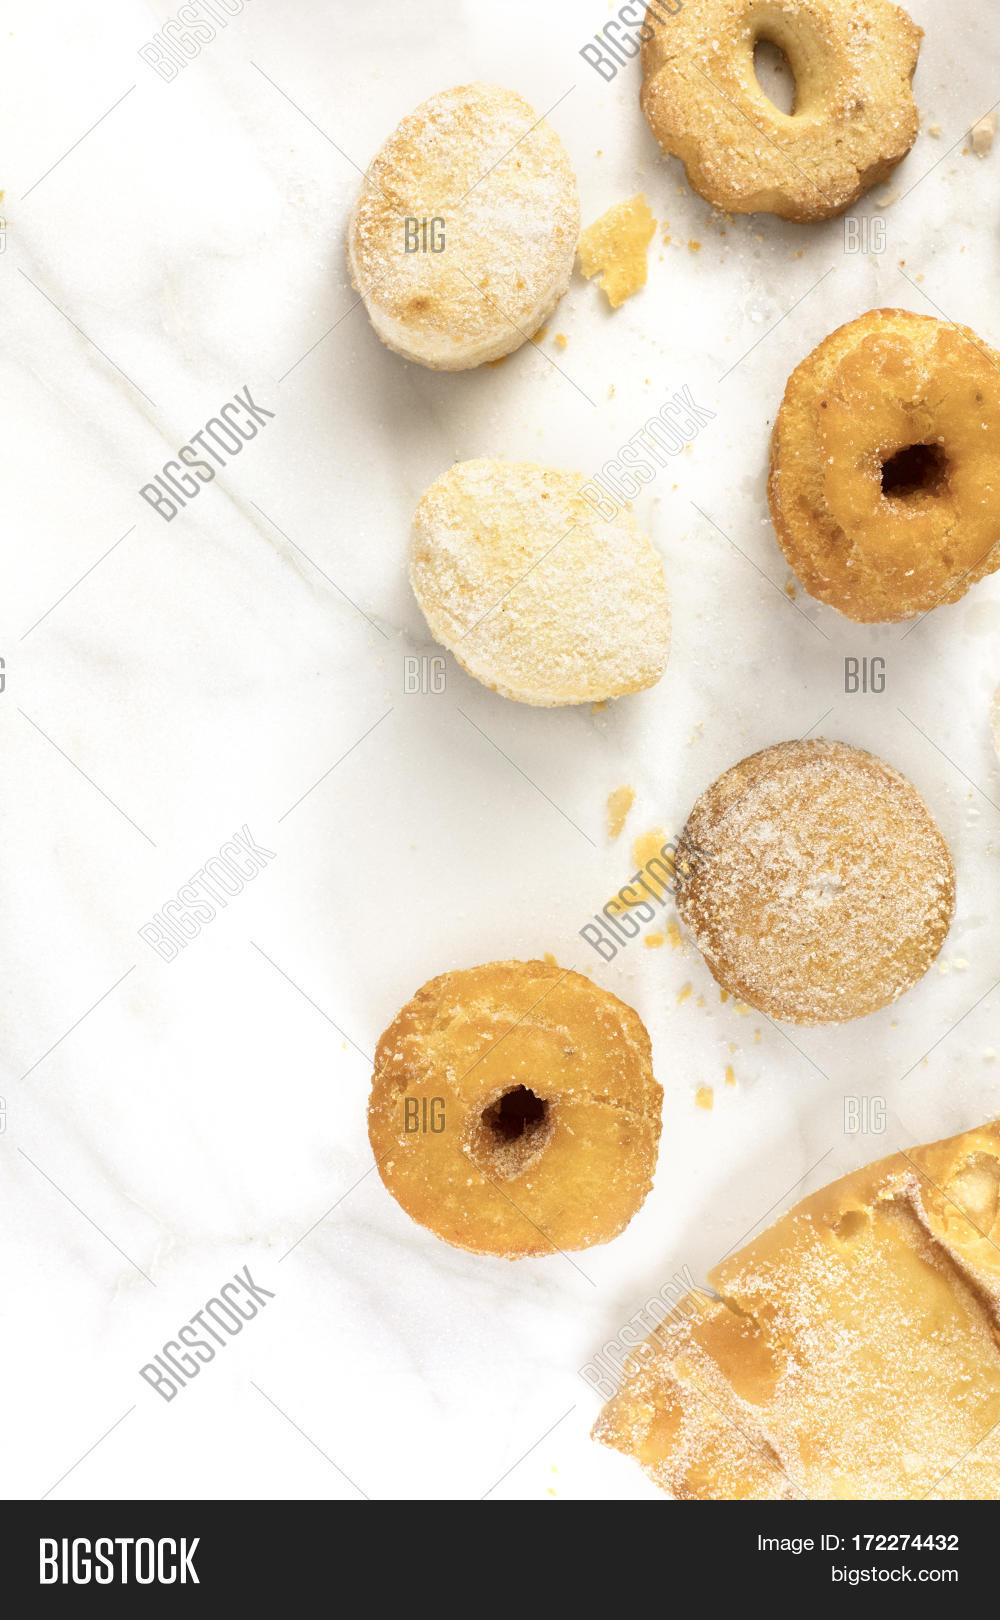 A photo of mantecados, polvorones and other traditional Spanish cookies, shot from above on a marble texture, with a place for text